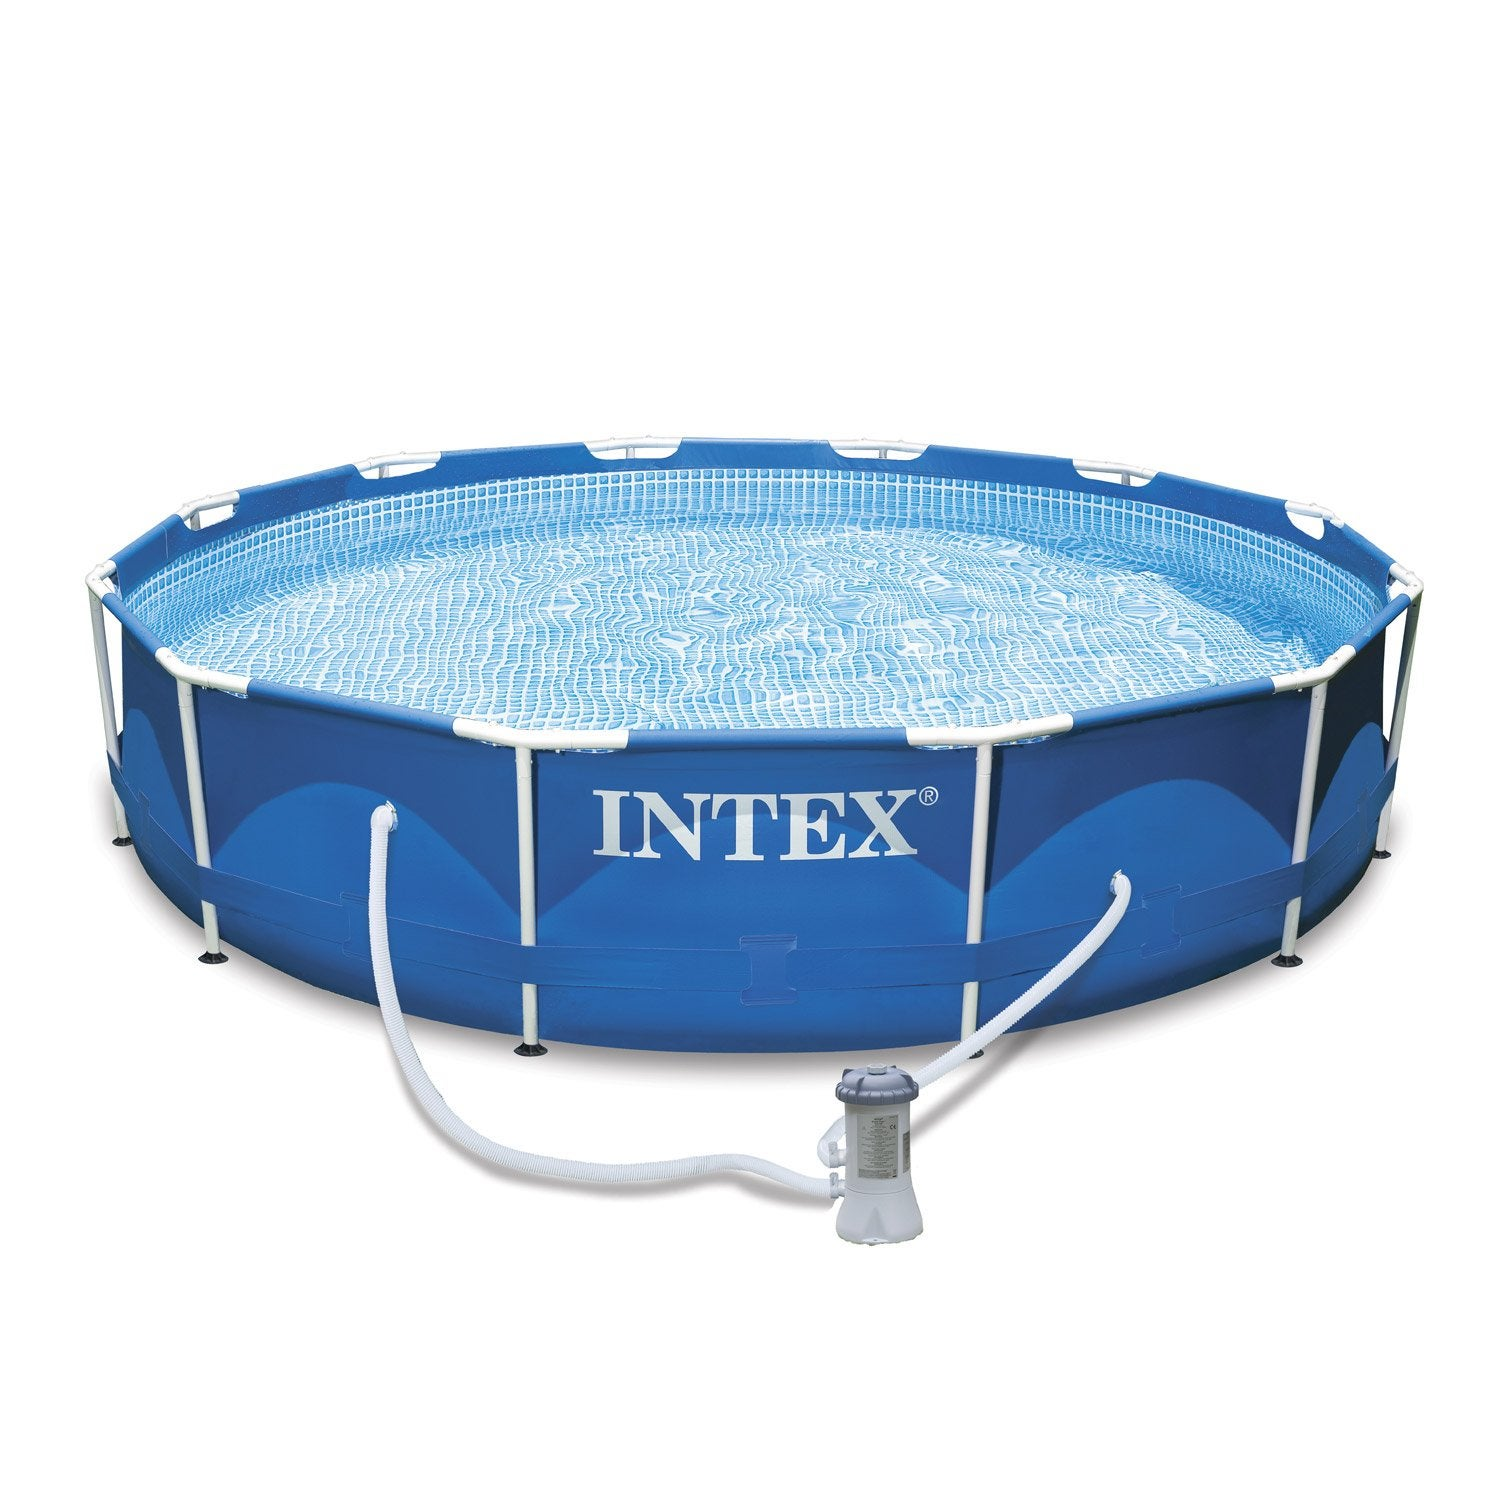 Piscine hors sol ultra frame entretien piscine intex for Piscine hors sol ultra frame